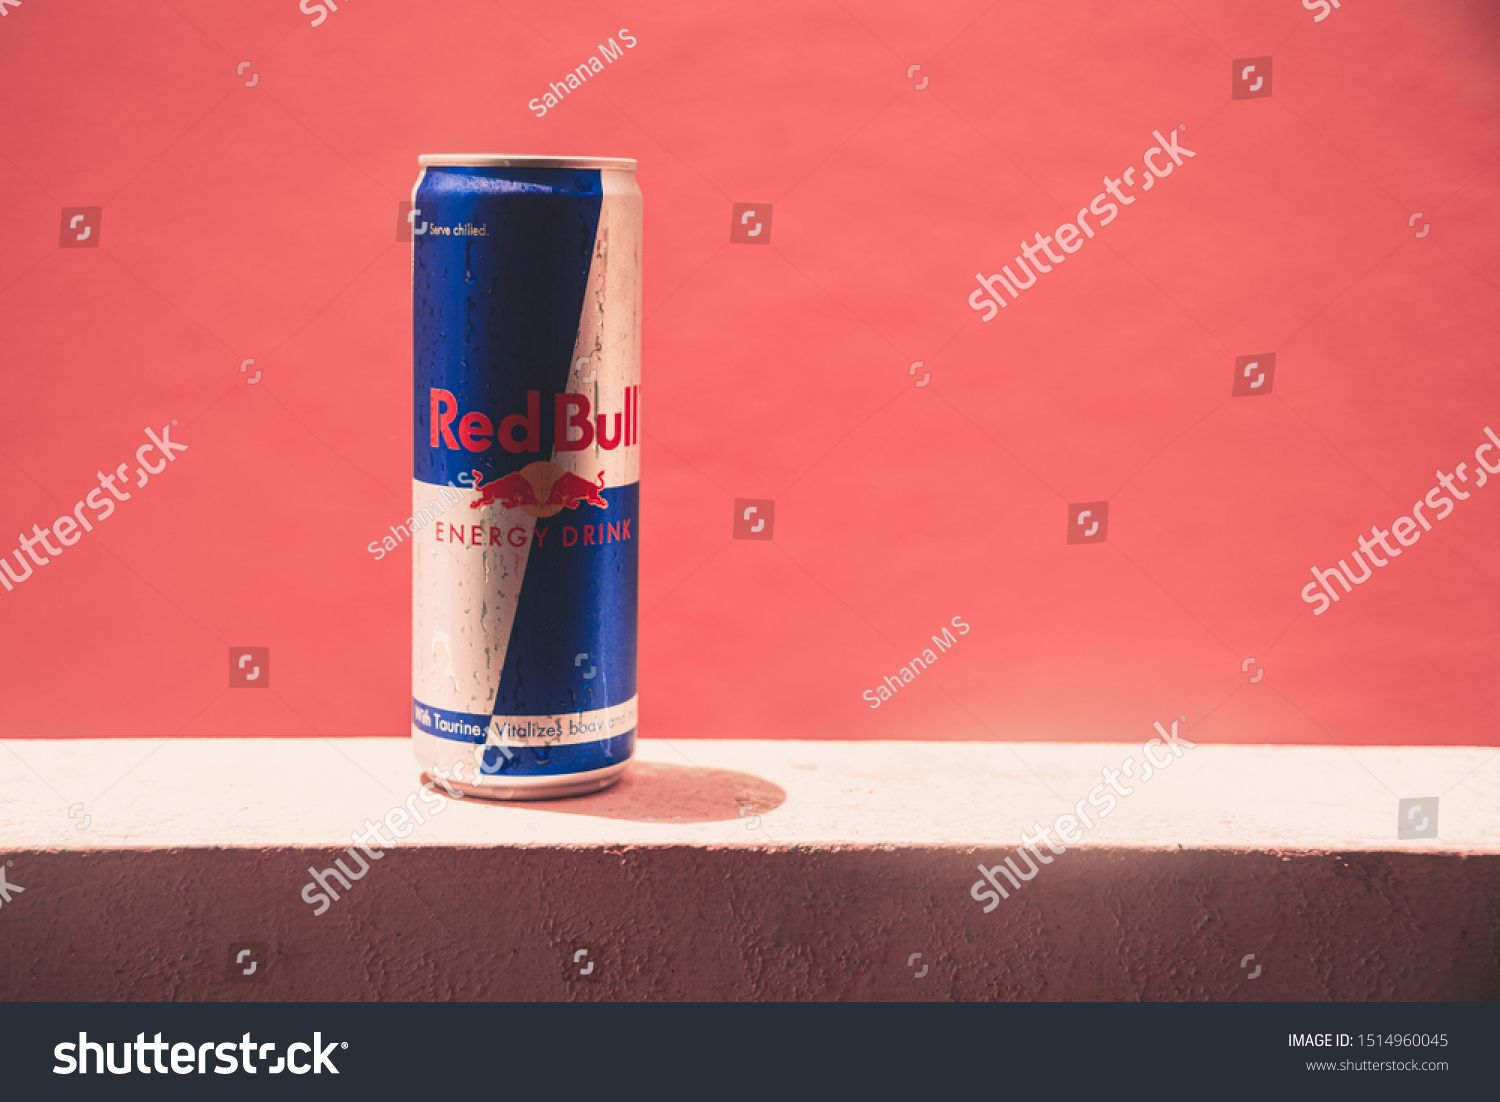 Mysuru, India September 26, 2019 Redbull energy drink